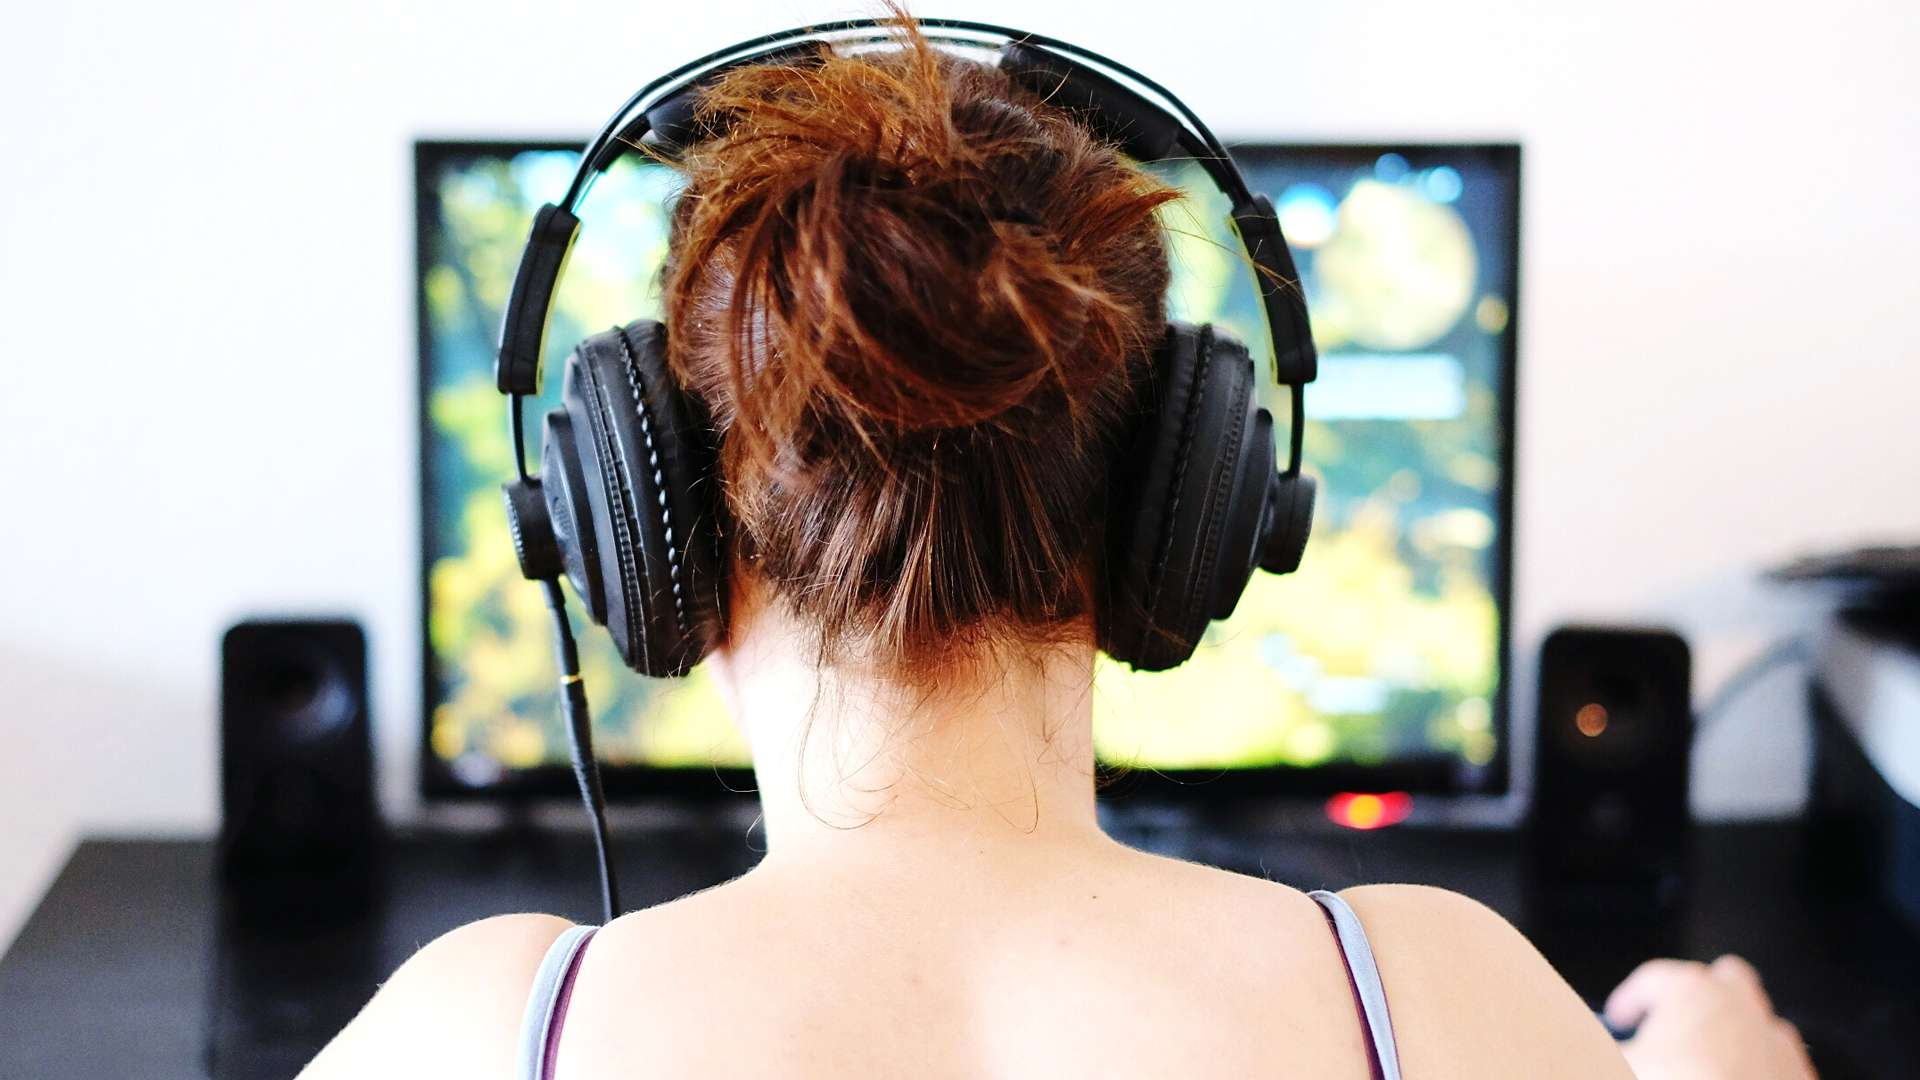 Person with headphones on playing a video game on a computer.